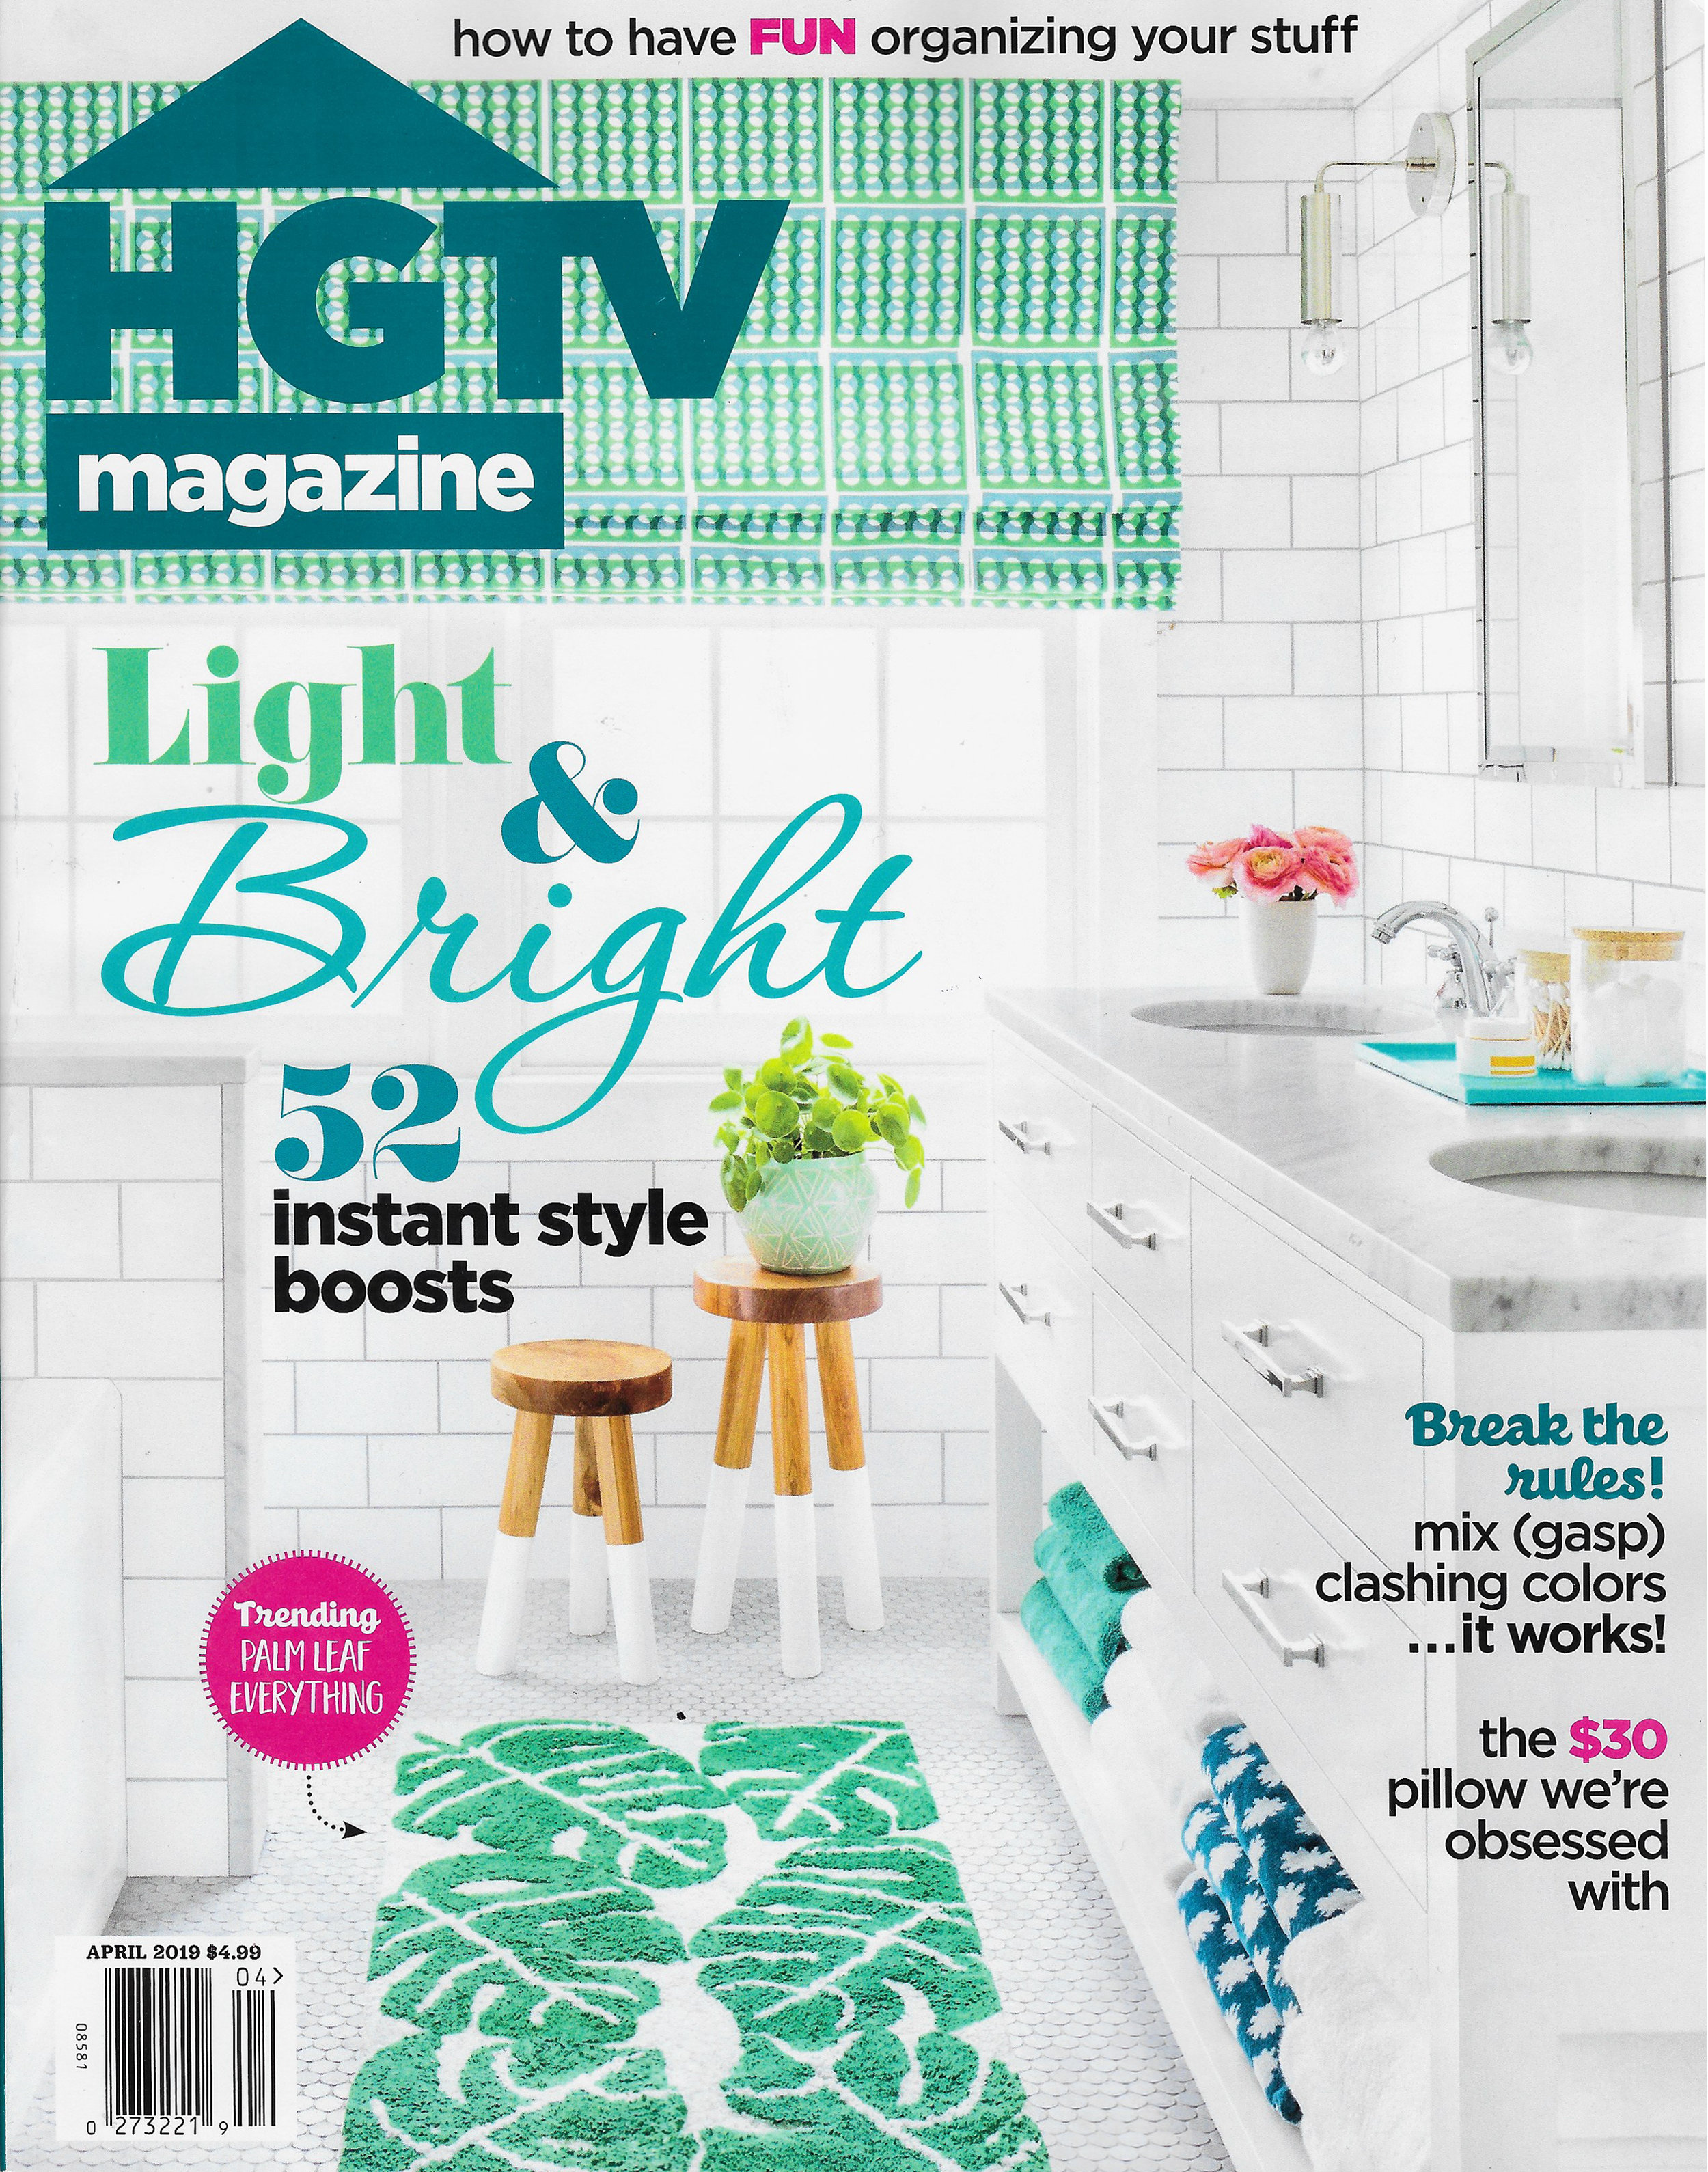 HGTV Magazine April 2019.jpg